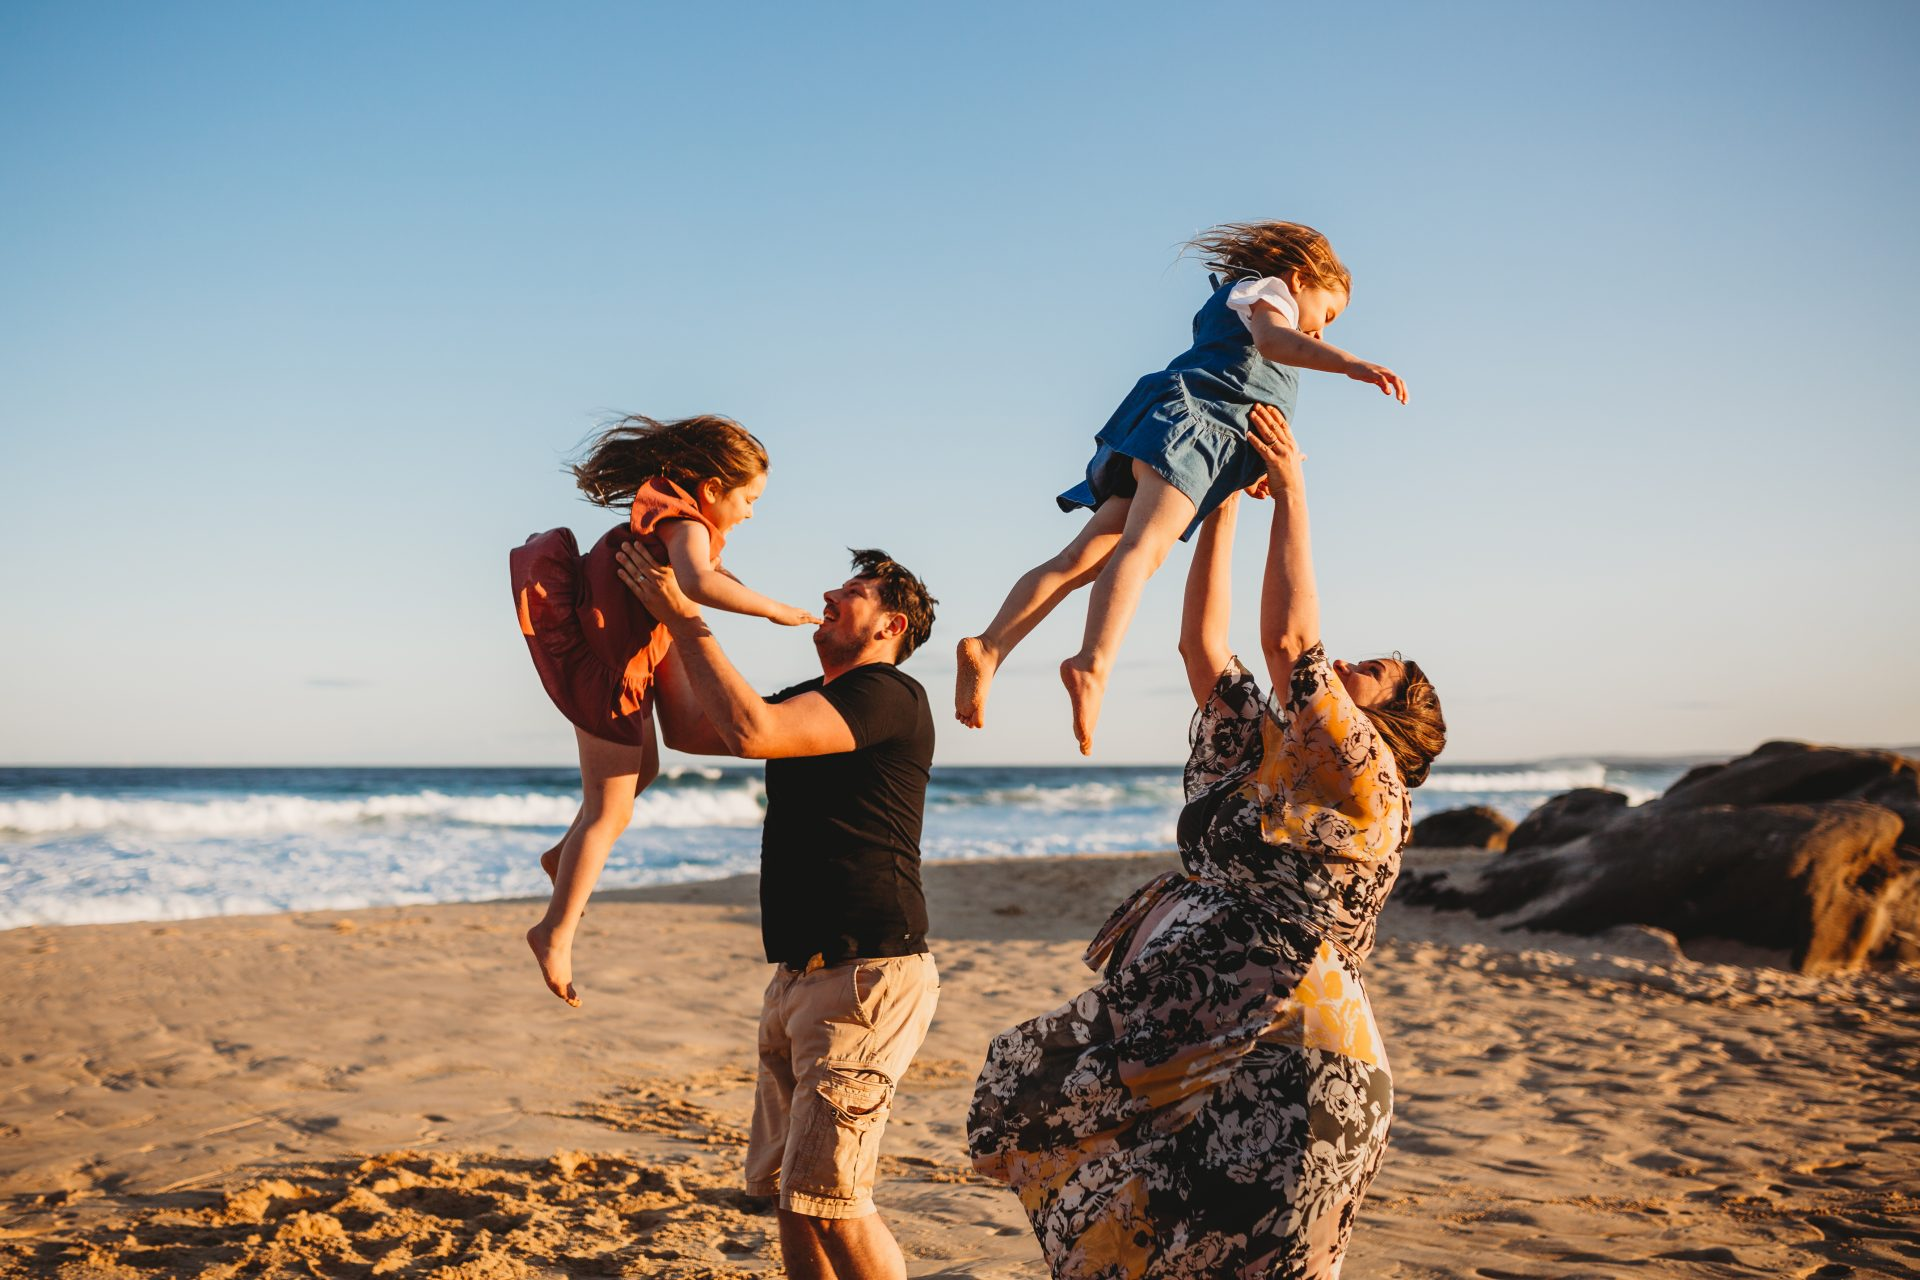 Mother and father throwing their young daughters up into the air, at the beach